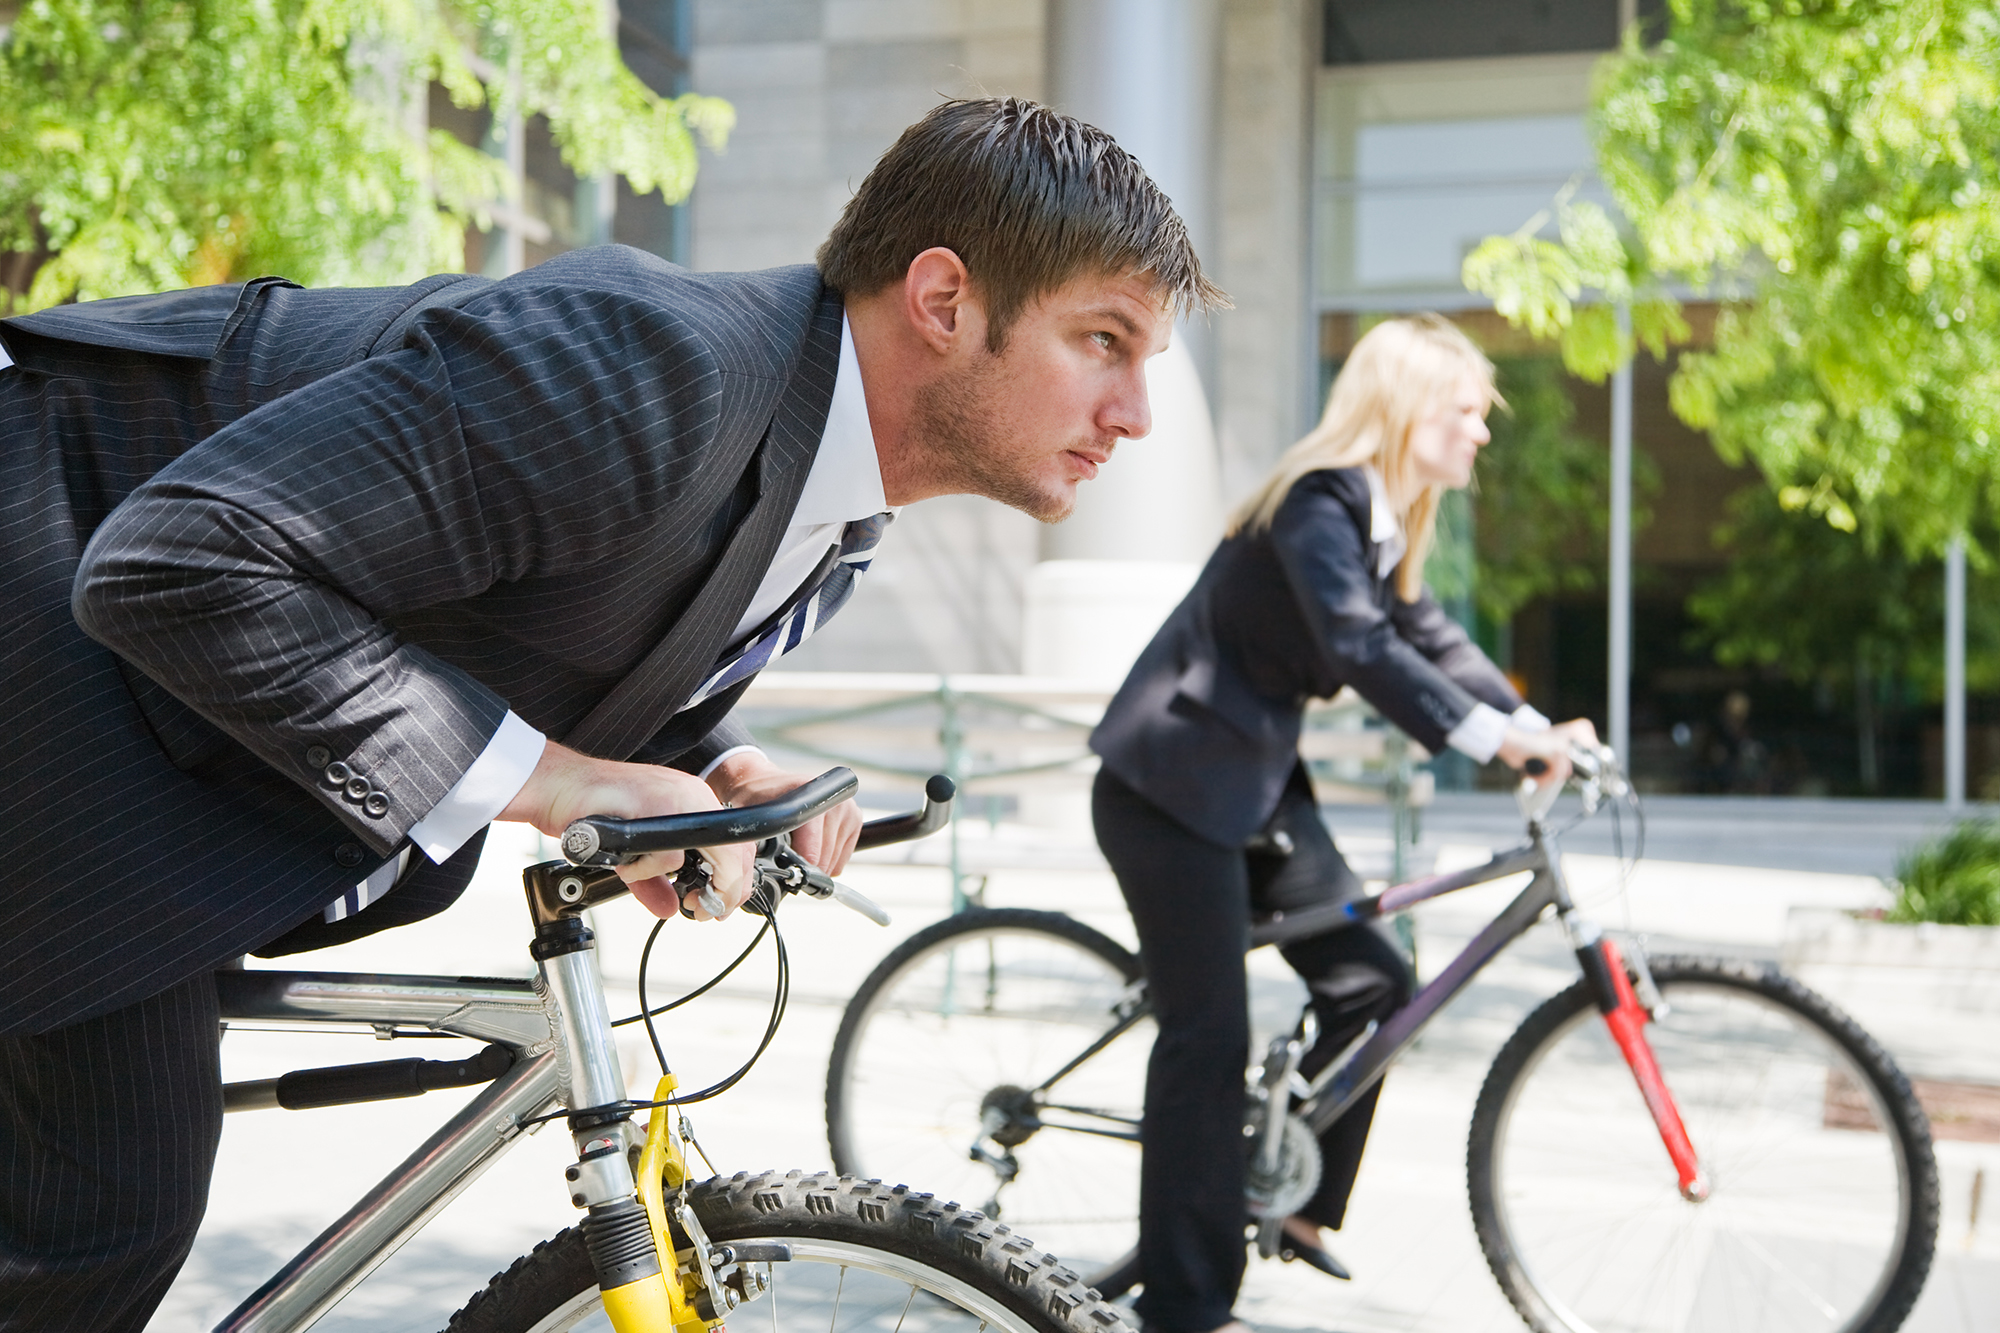 Business people on bicycles